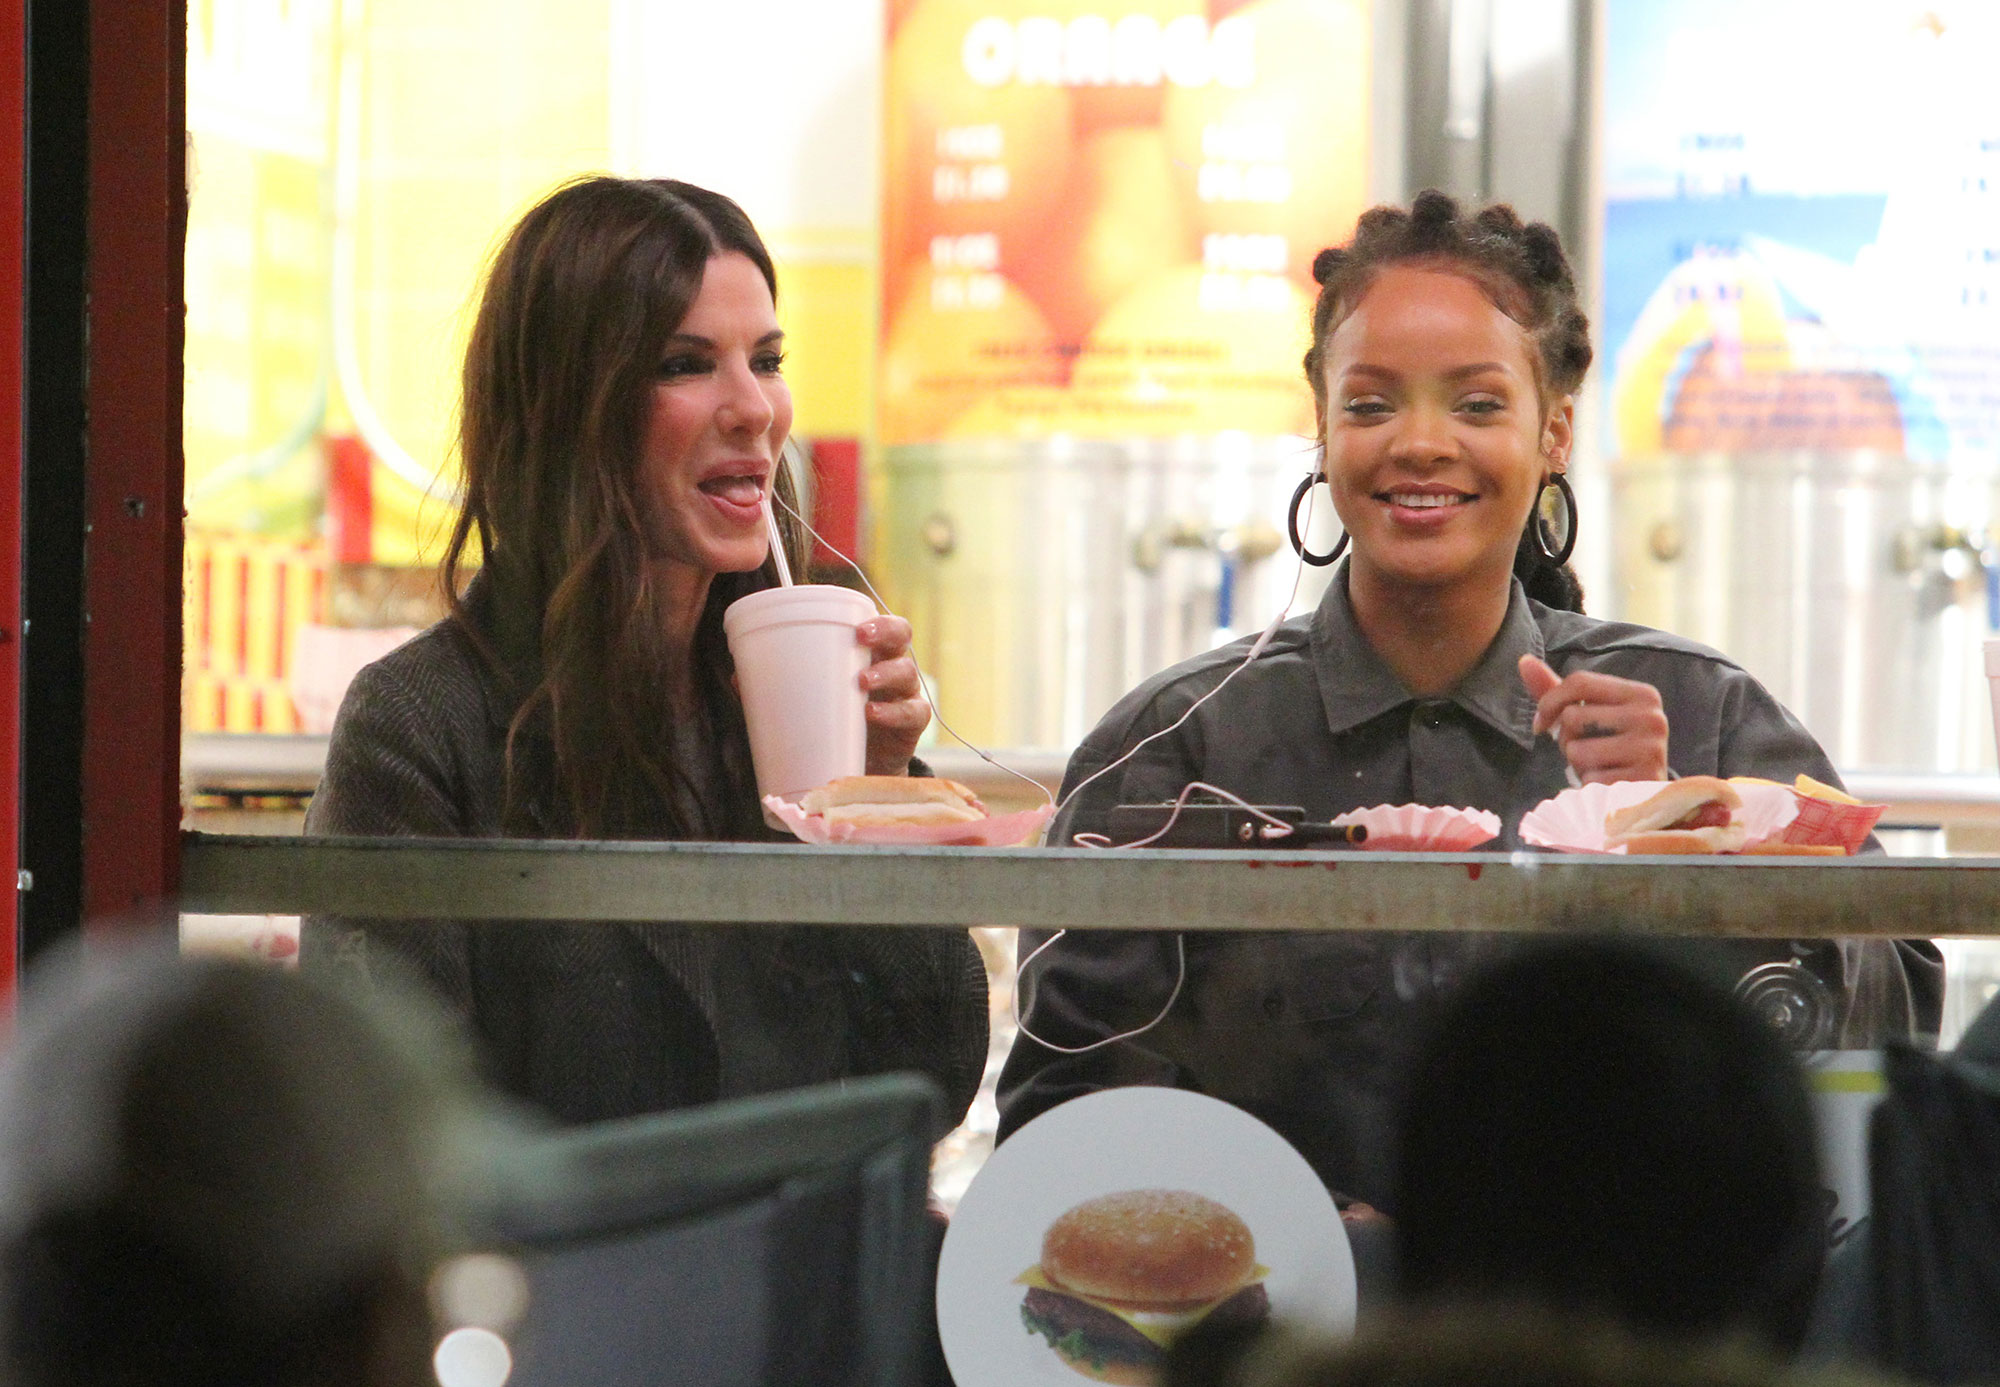 """Sandra Bullock and Rihanna spotted eating hot dogs and french fries on the set of """"OCEANS 8"""" while filming in Manhattan's PAPAYA DOG fast food restaurant located in the Wall Street area in NYC, New York. 07 Dec 2016 Pictured: Sandra Bullock, Rihanna. Photo credit: LRNYC / MEGA TheMegaAgency.com +1 888 505 6342"""